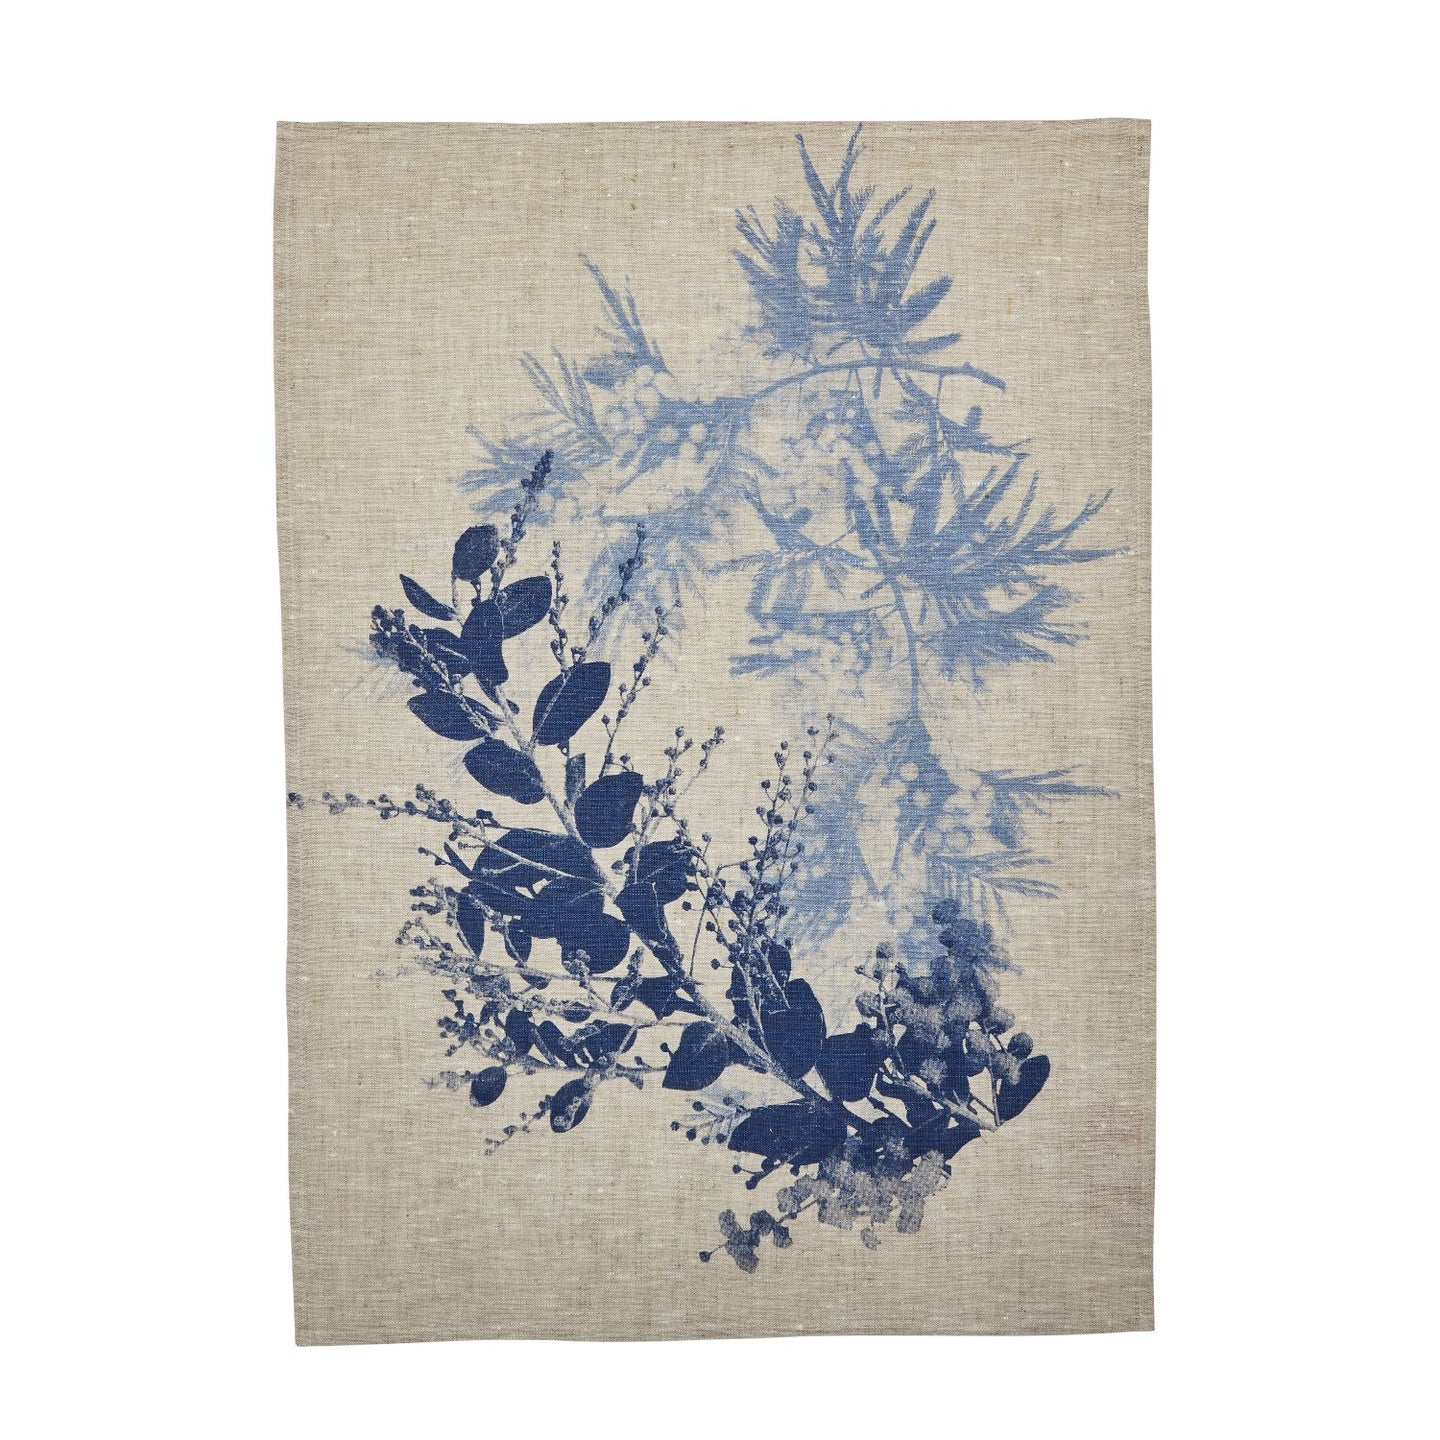 Bonnie and Neil tea towel, hand printed in Melbourne, wattle garden blue on oat linen.